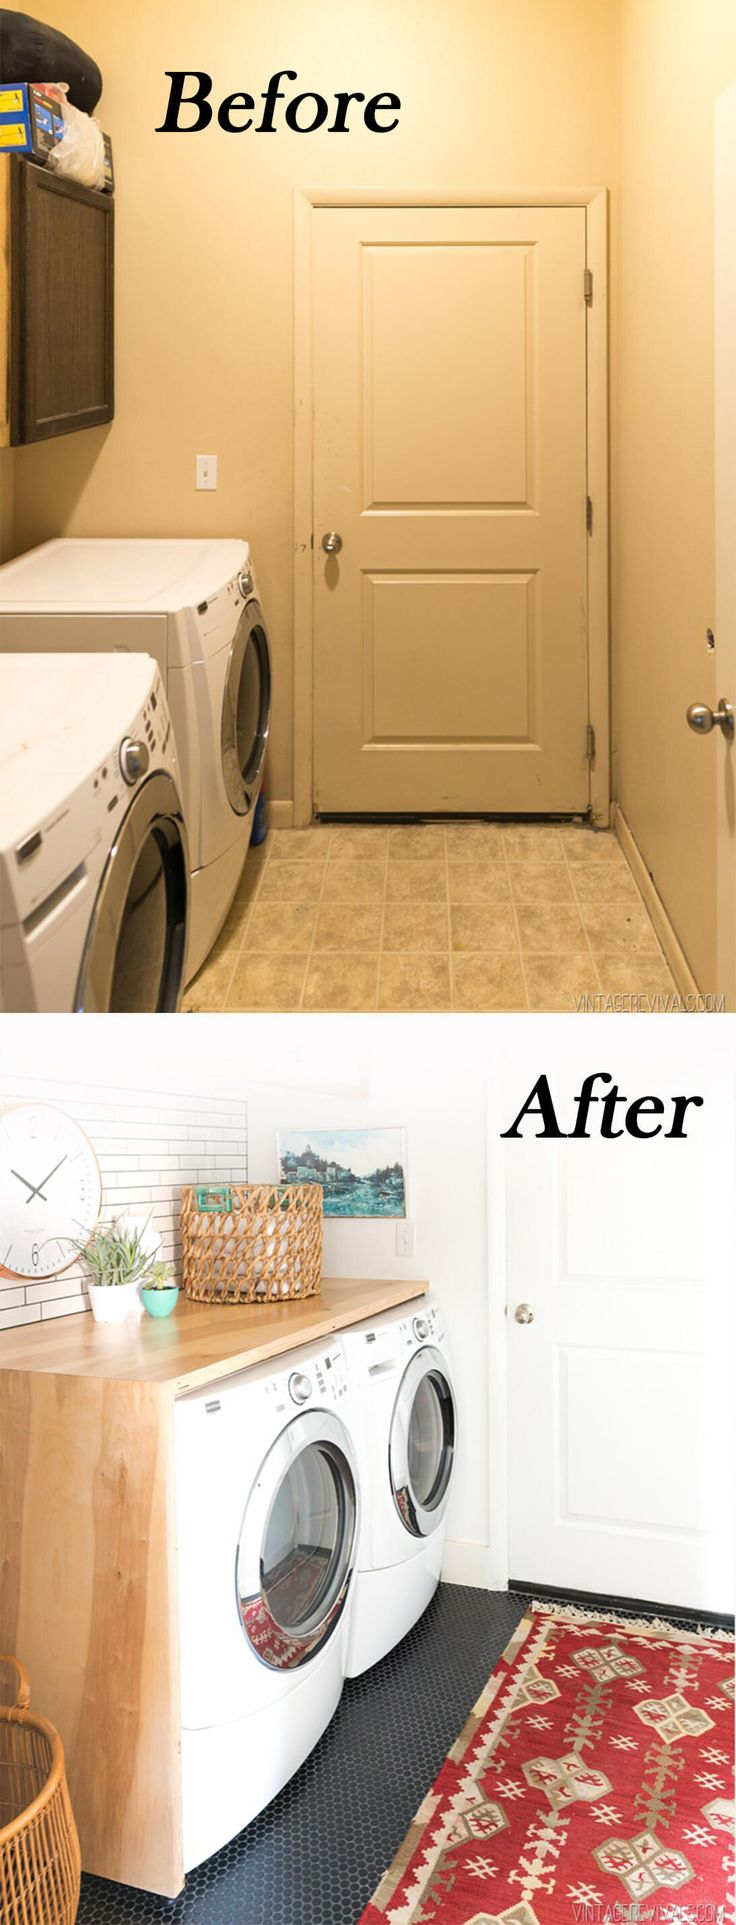 23 Before and After Budget Friendly Laundry